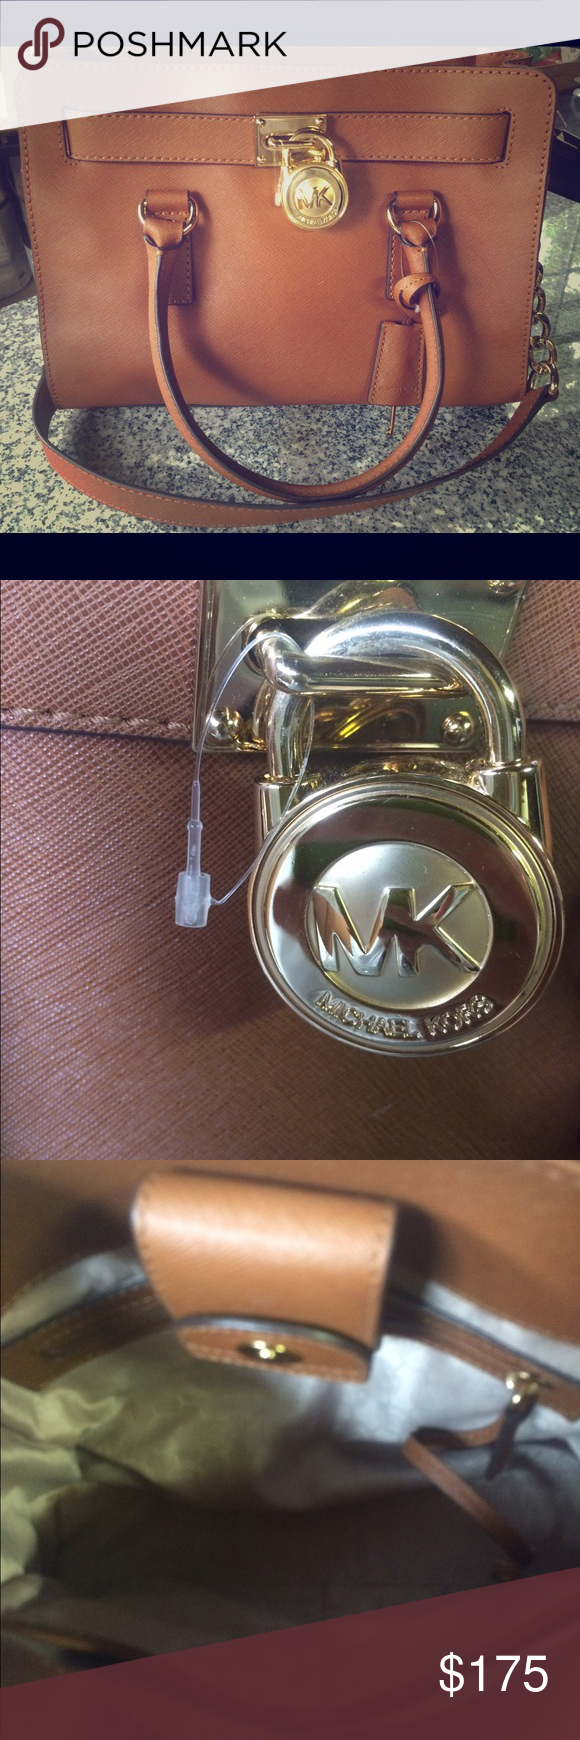 MICHAEL KORS HAMILTON SATCHEL Beautiful and brand new without tags but still has tag thingy attached so has never been carried! Perfect fall bag! Michael Kors Bags Satchels